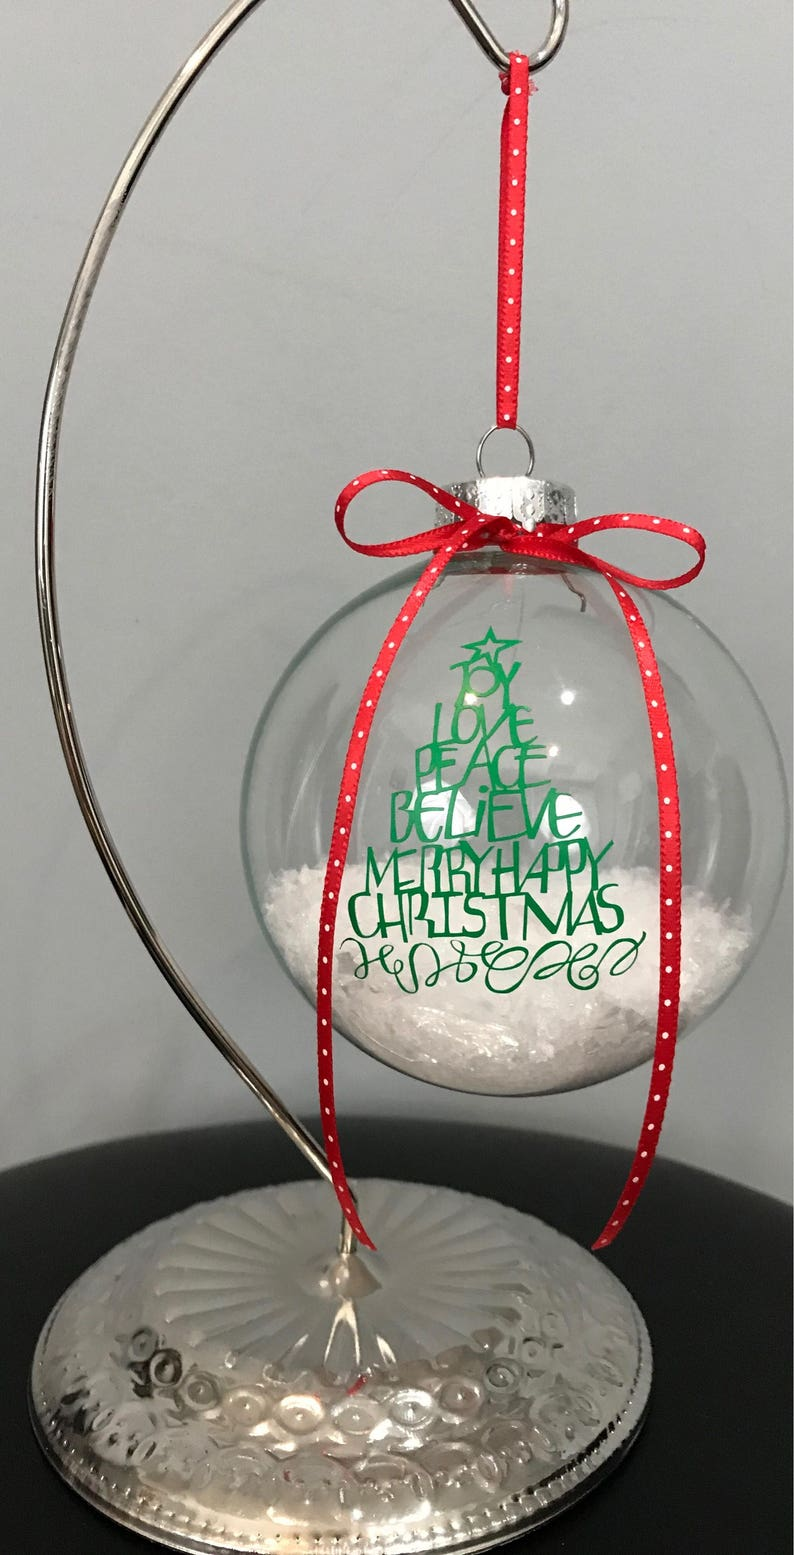 Christmas Ornaments Clear Glass Ornaments Ornaments With Saying Snow Filled Ornaments Gift Christmas Tree Decor Unique Ornament